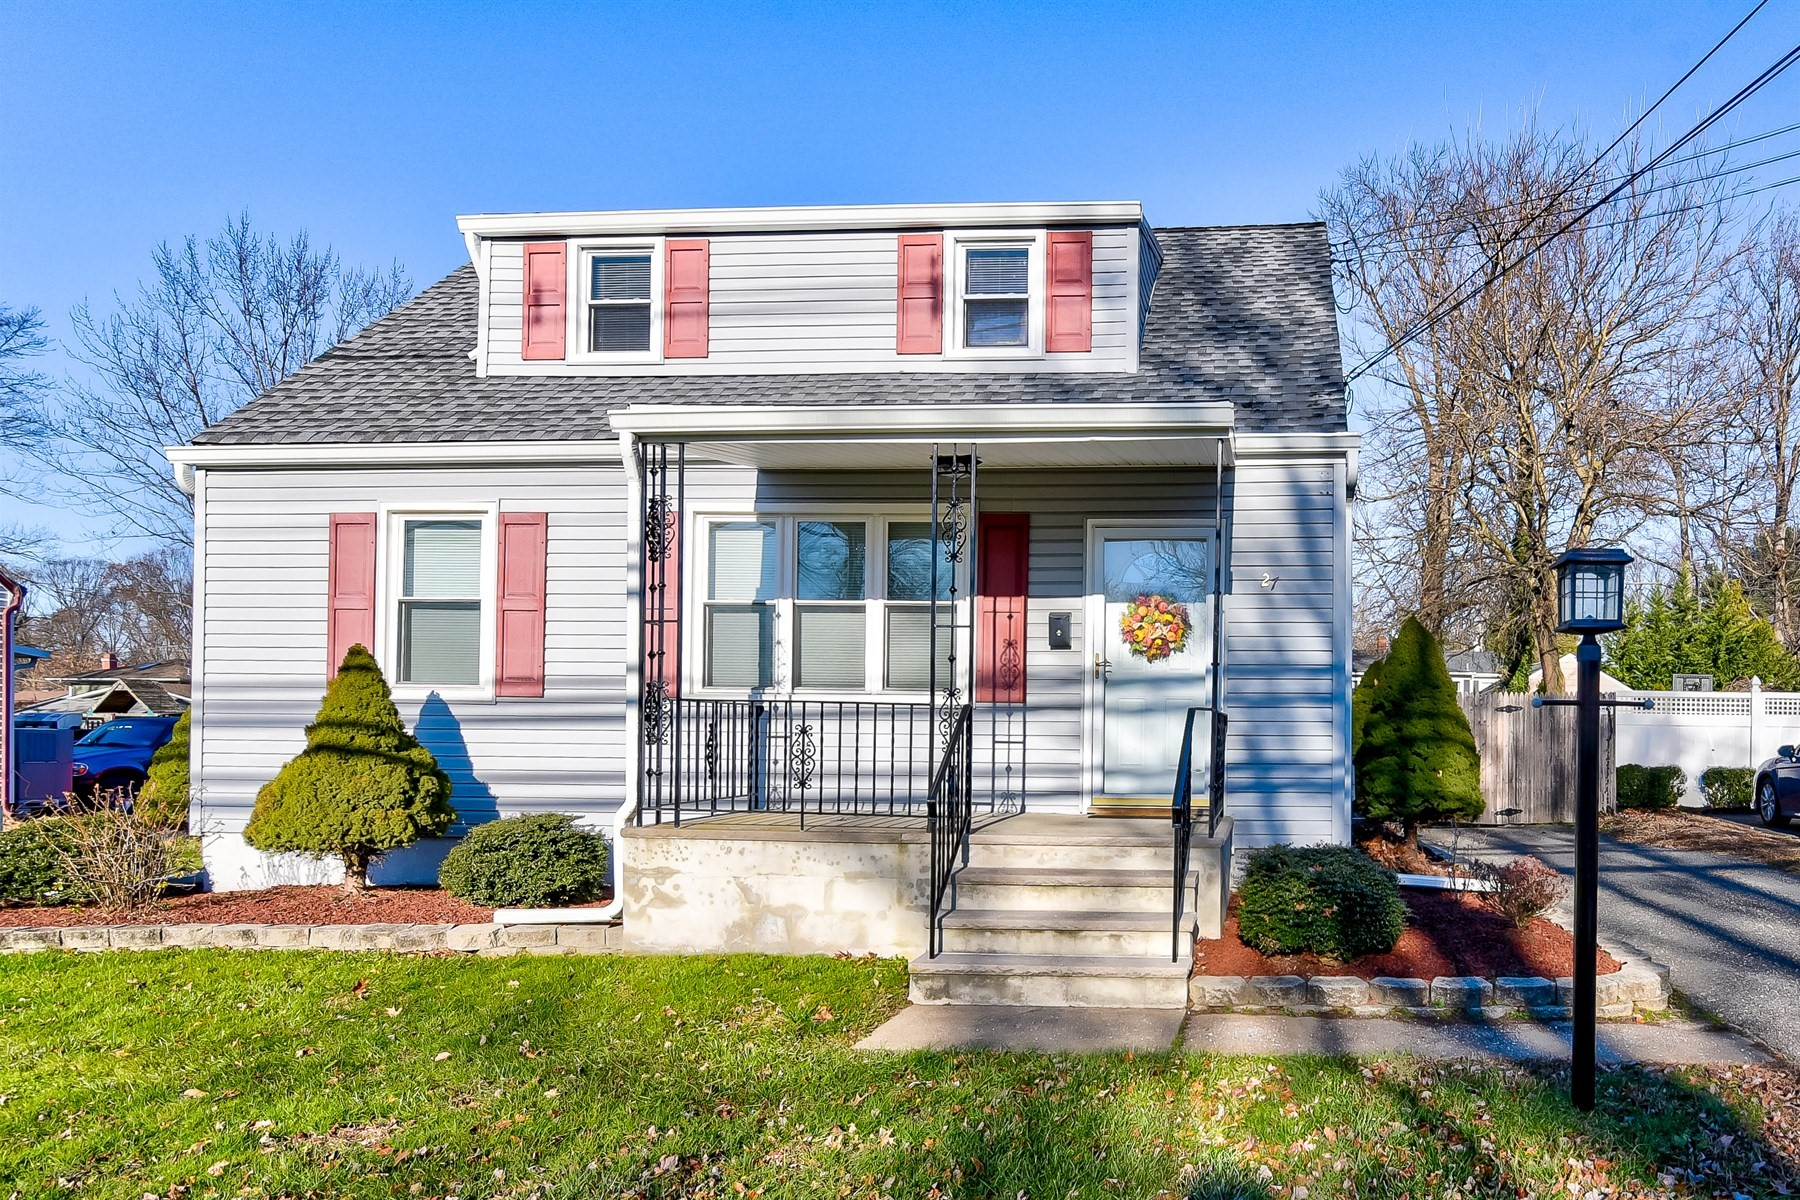 Single Family Home for Sale at Cape Cod 27 New Brunswick Avenue, Matawan, New Jersey 07747 United States